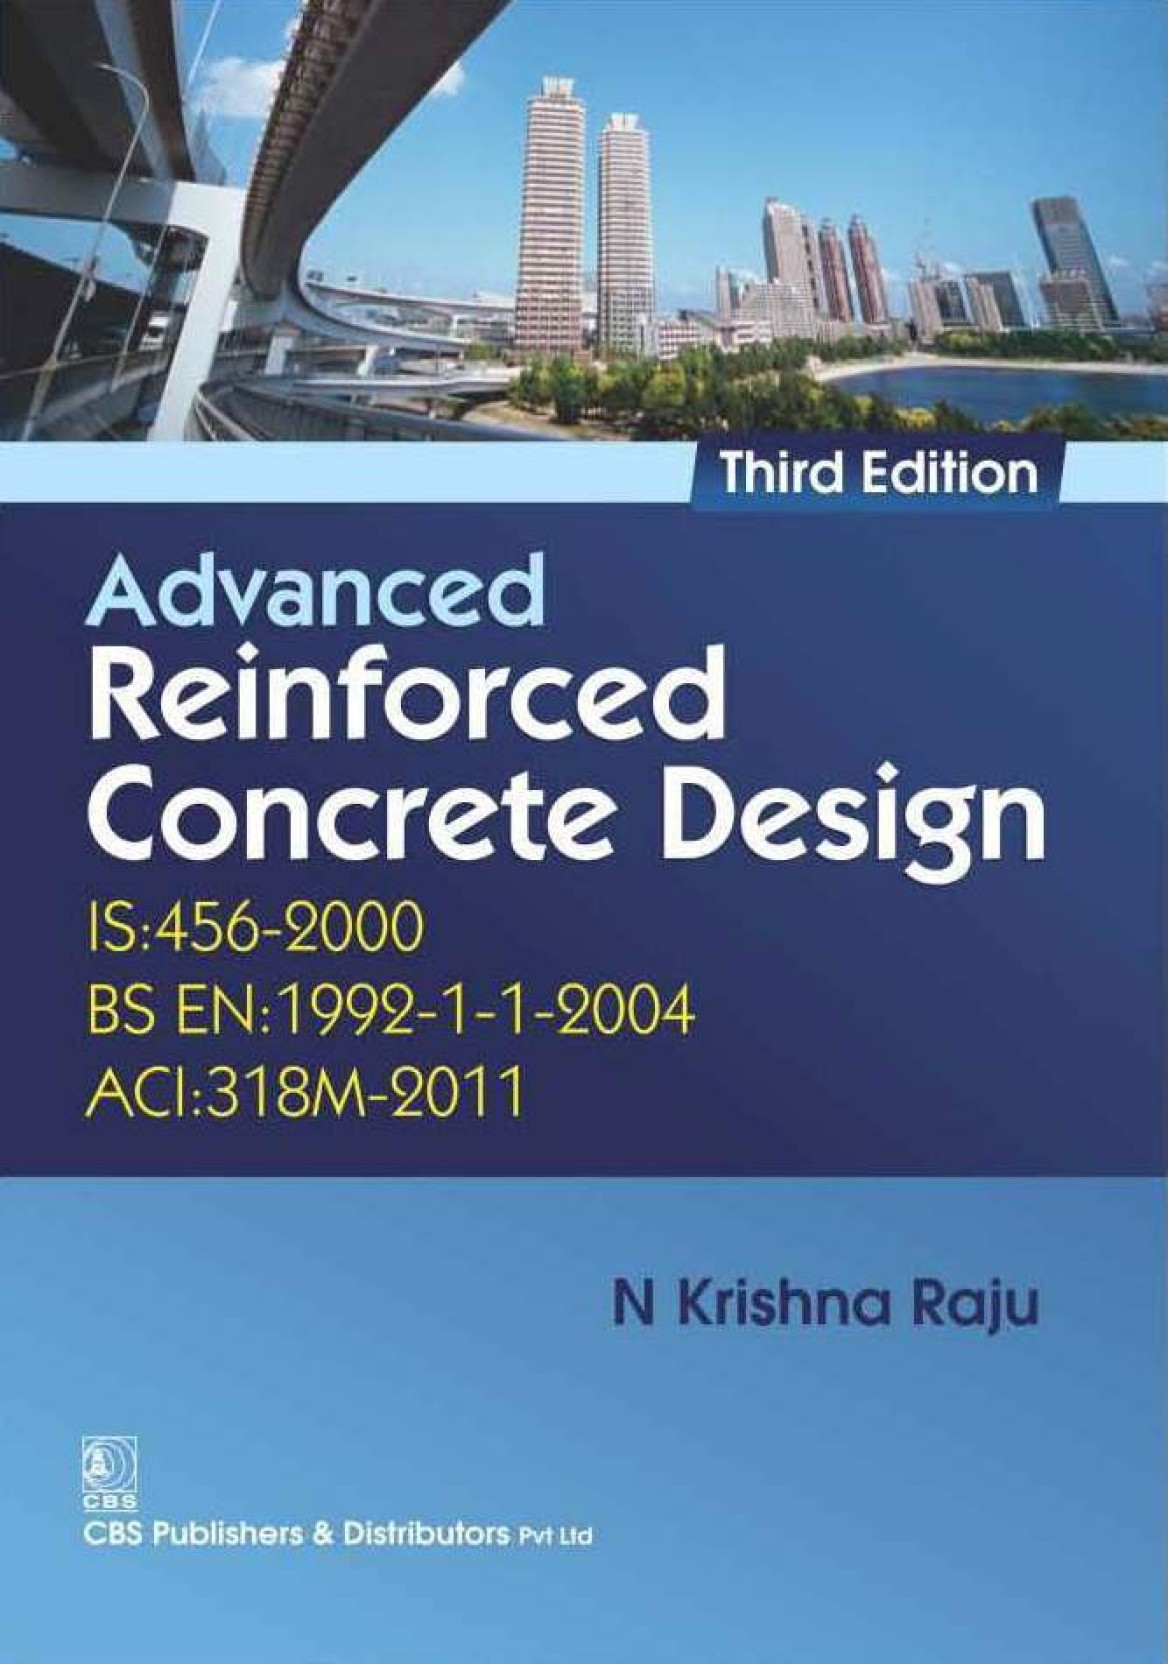 Advanced Reinforced Concrete Design (IS : 456-2000). ADD TO CART